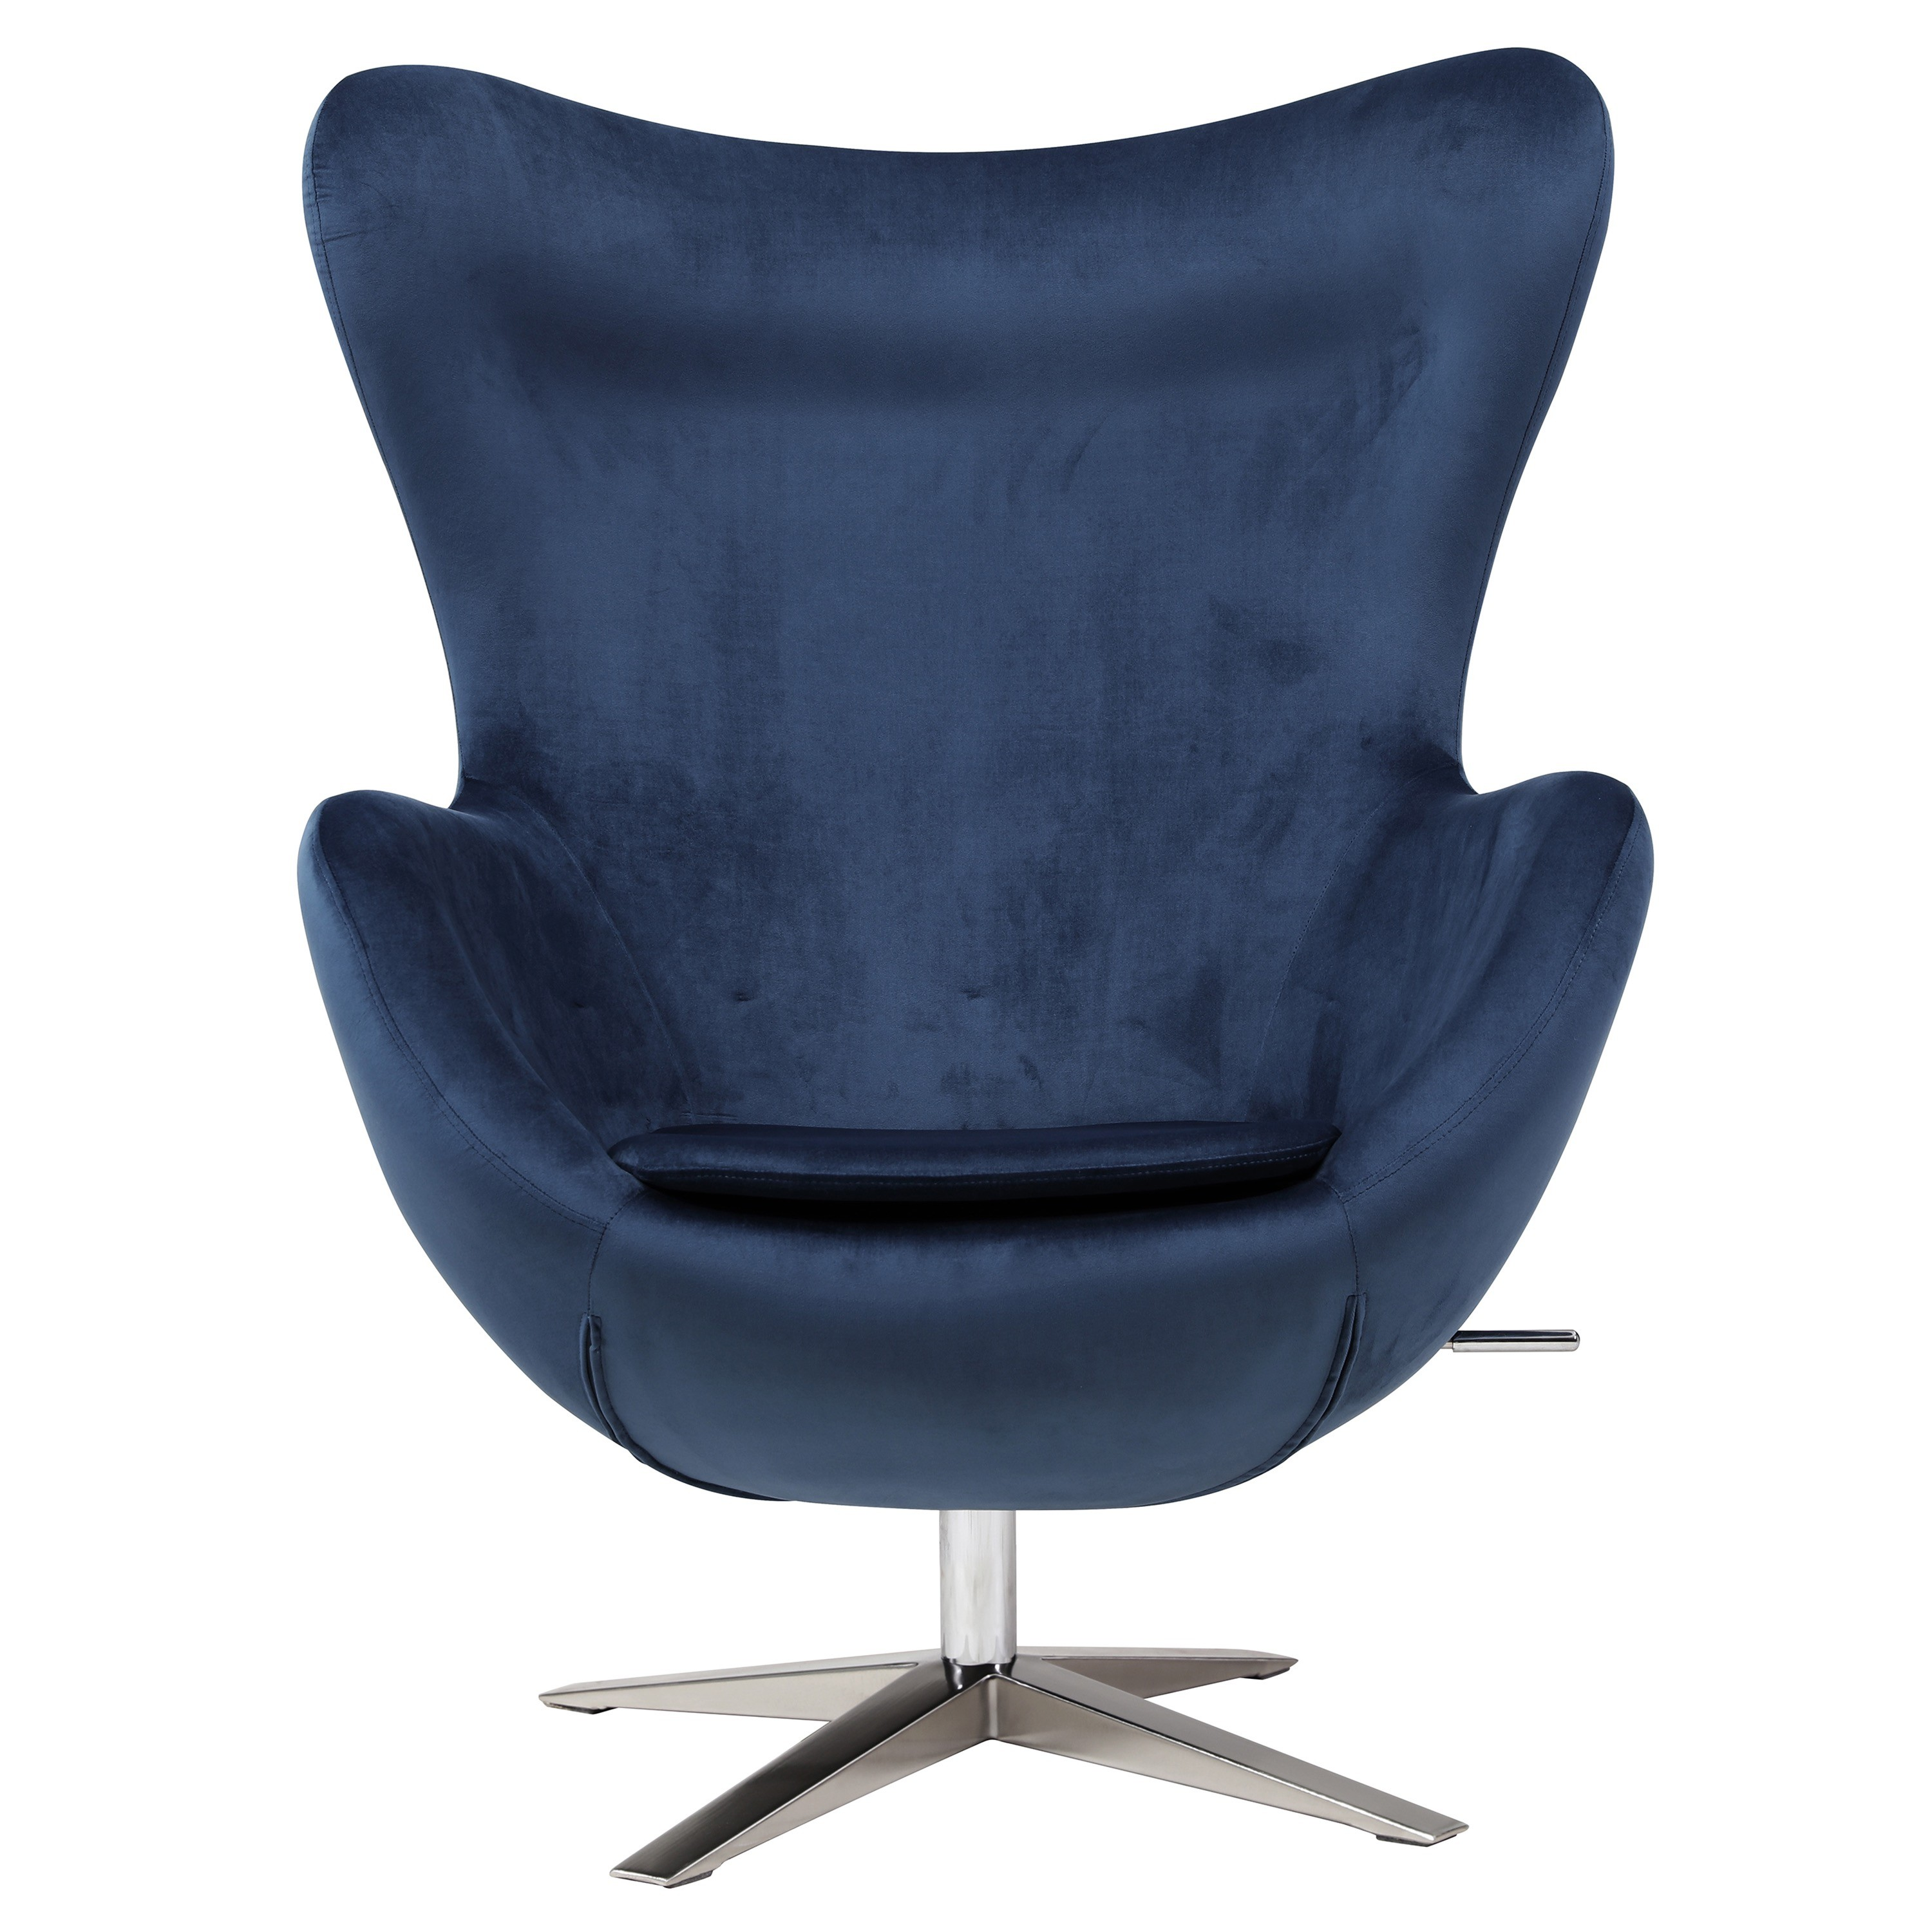 453043 Mb Ch Npd Furniture Wholesale Lifestyle